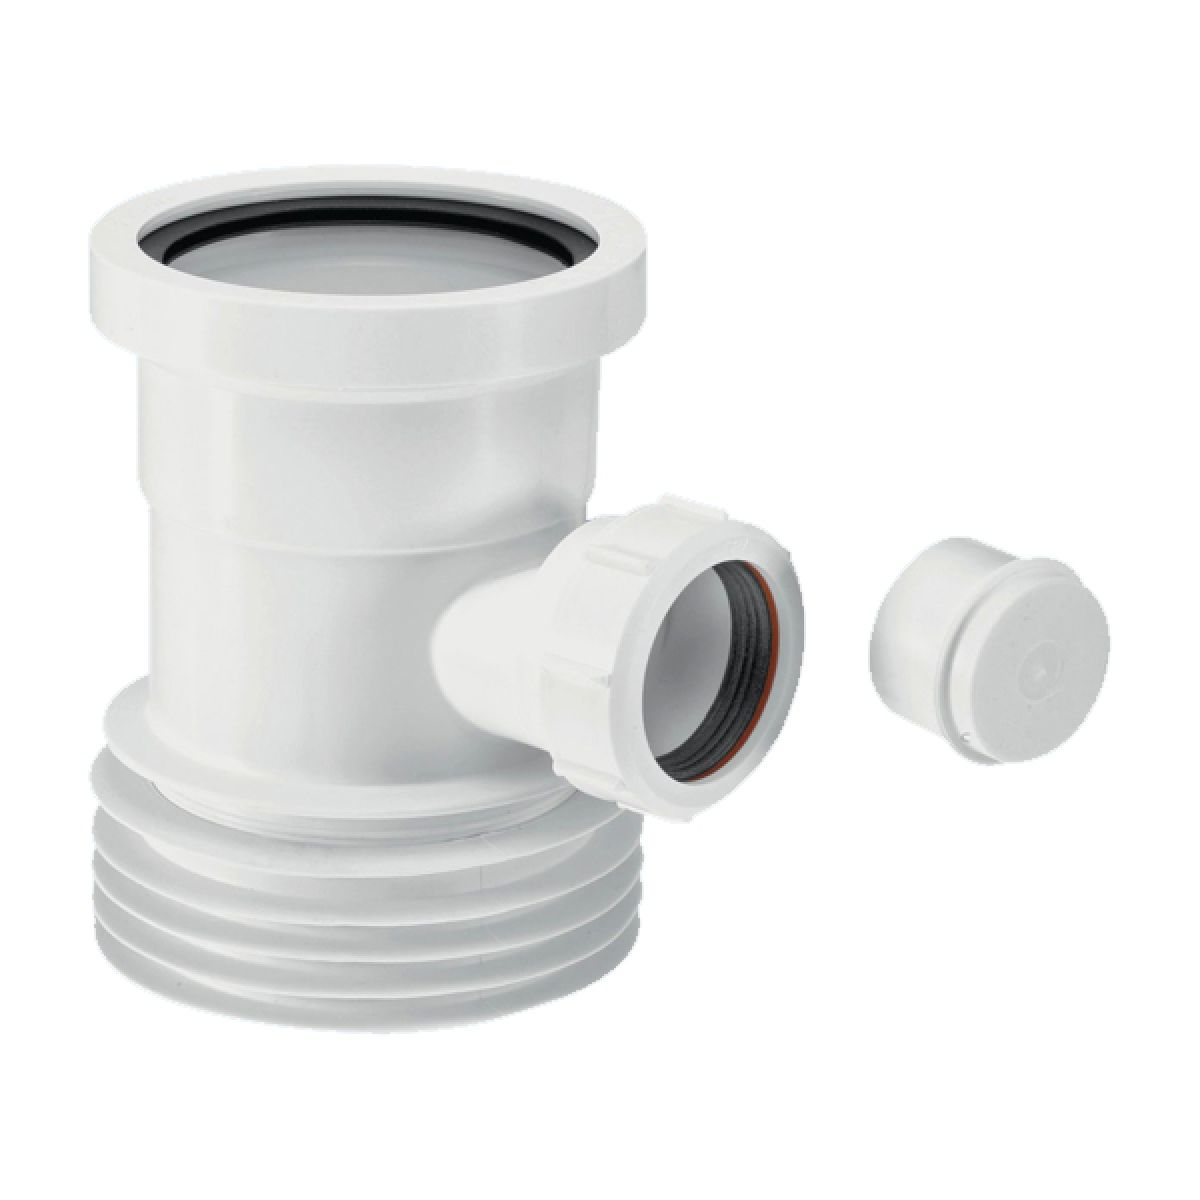 McAlpine WC-BP1 Boss Pipe for use with WC Connectors